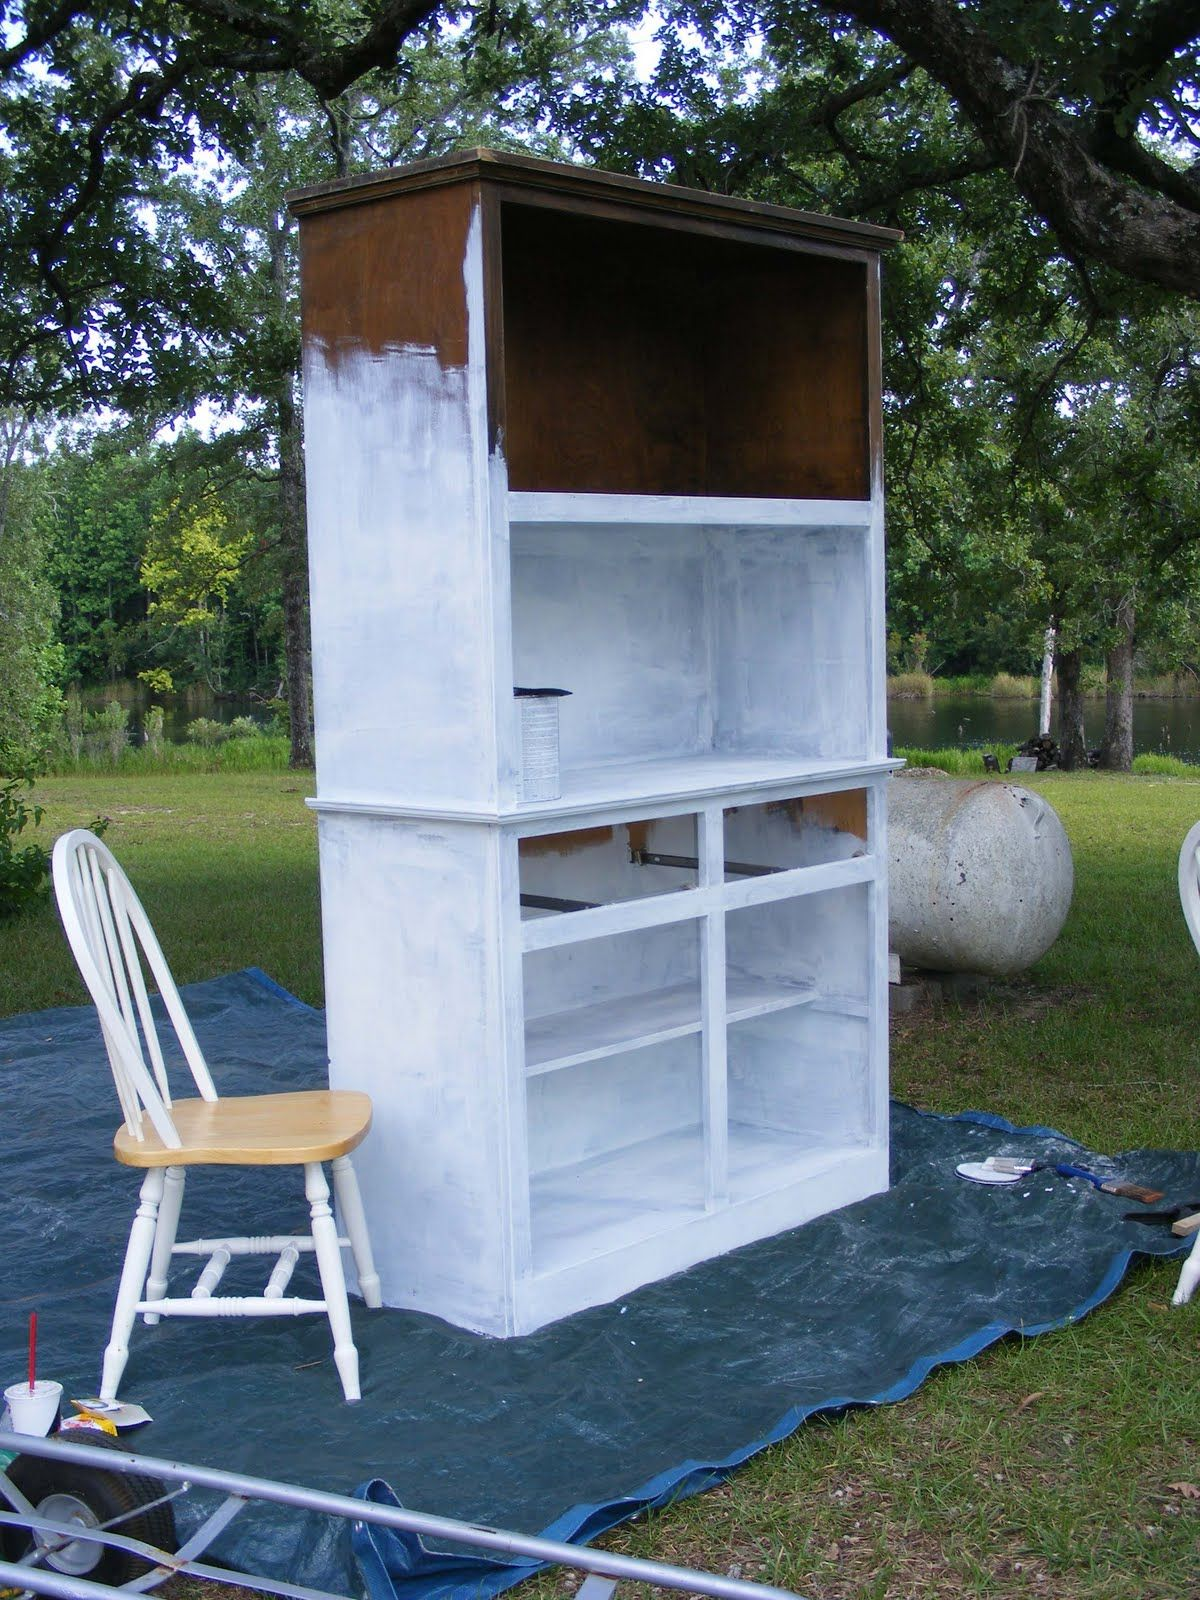 The Best Primer for Painting Furniture | Trucos, Intereses y Espejo